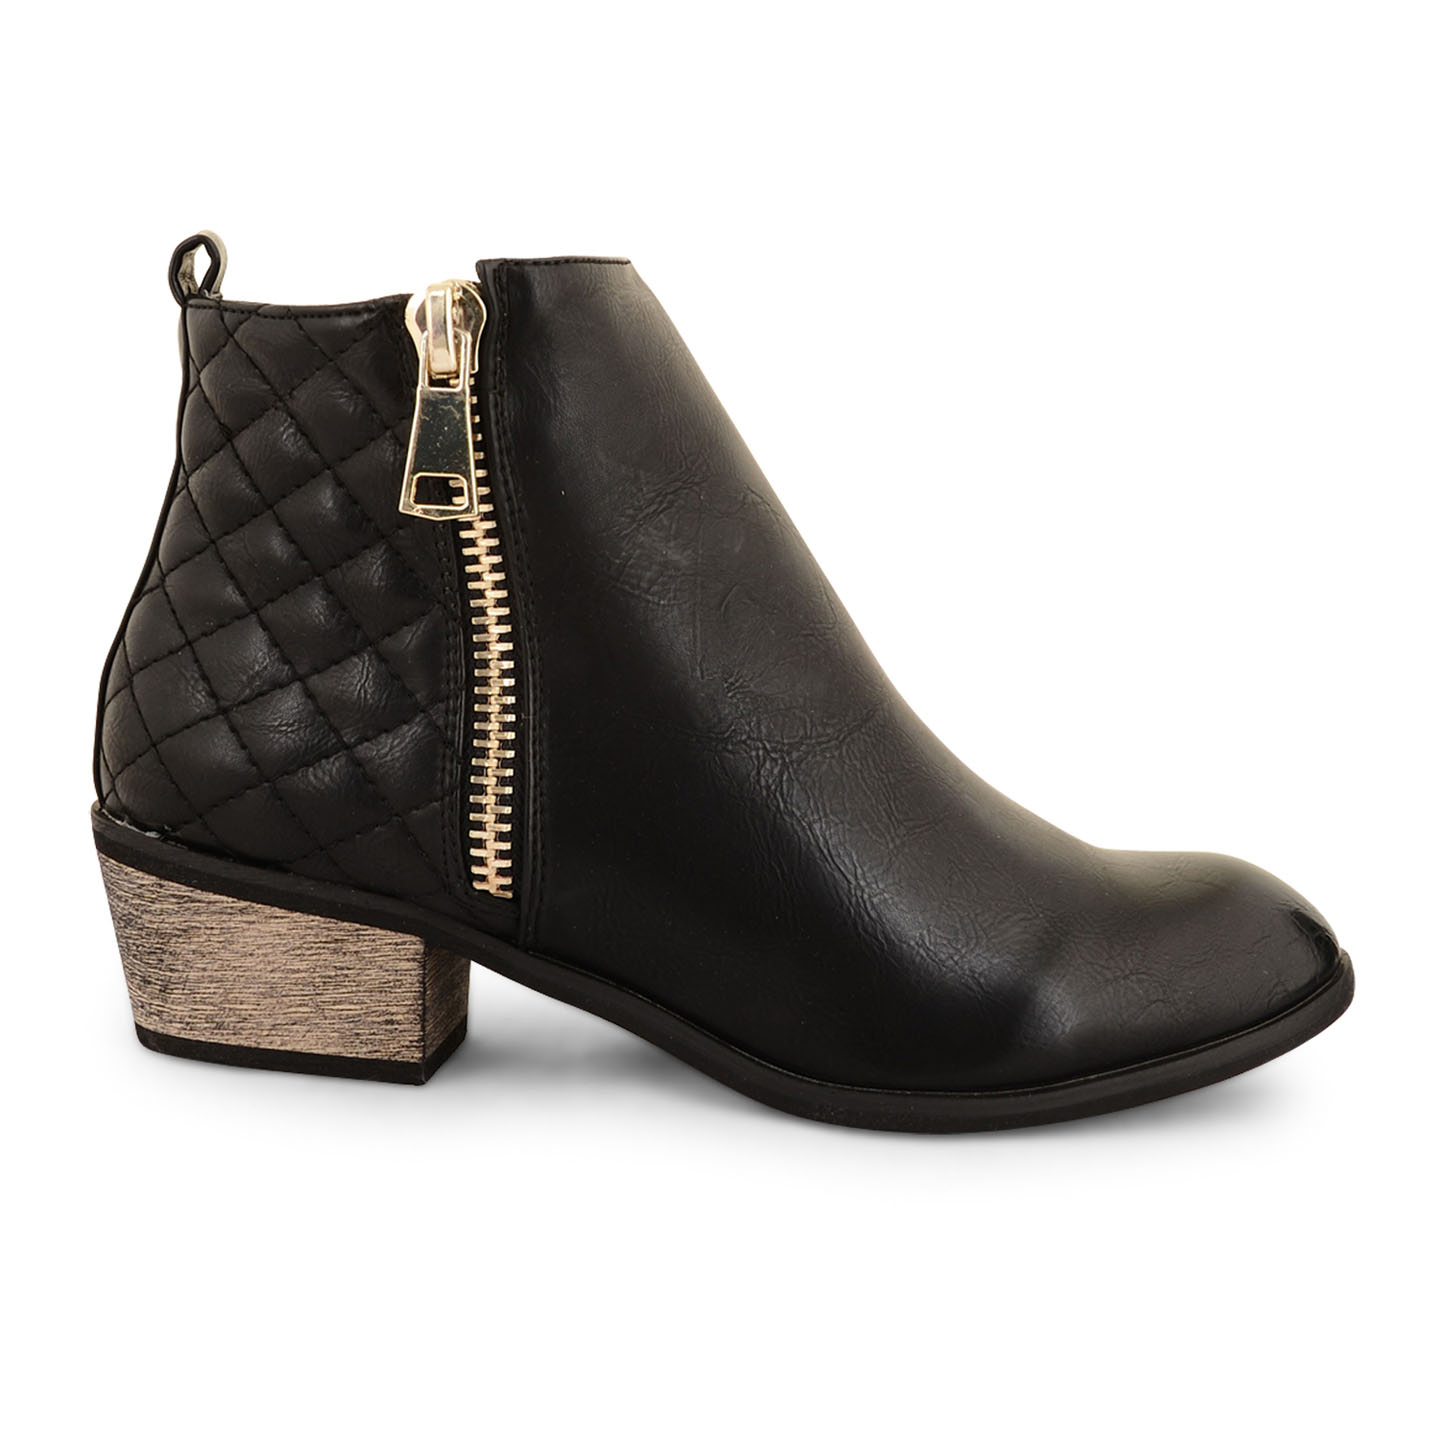 Whatever the season, a pair of women's black ankle boots are a wardrobe essential. From versatile flats to heels, we have the perfect pair of black ladies' ankle boots for every occasion.